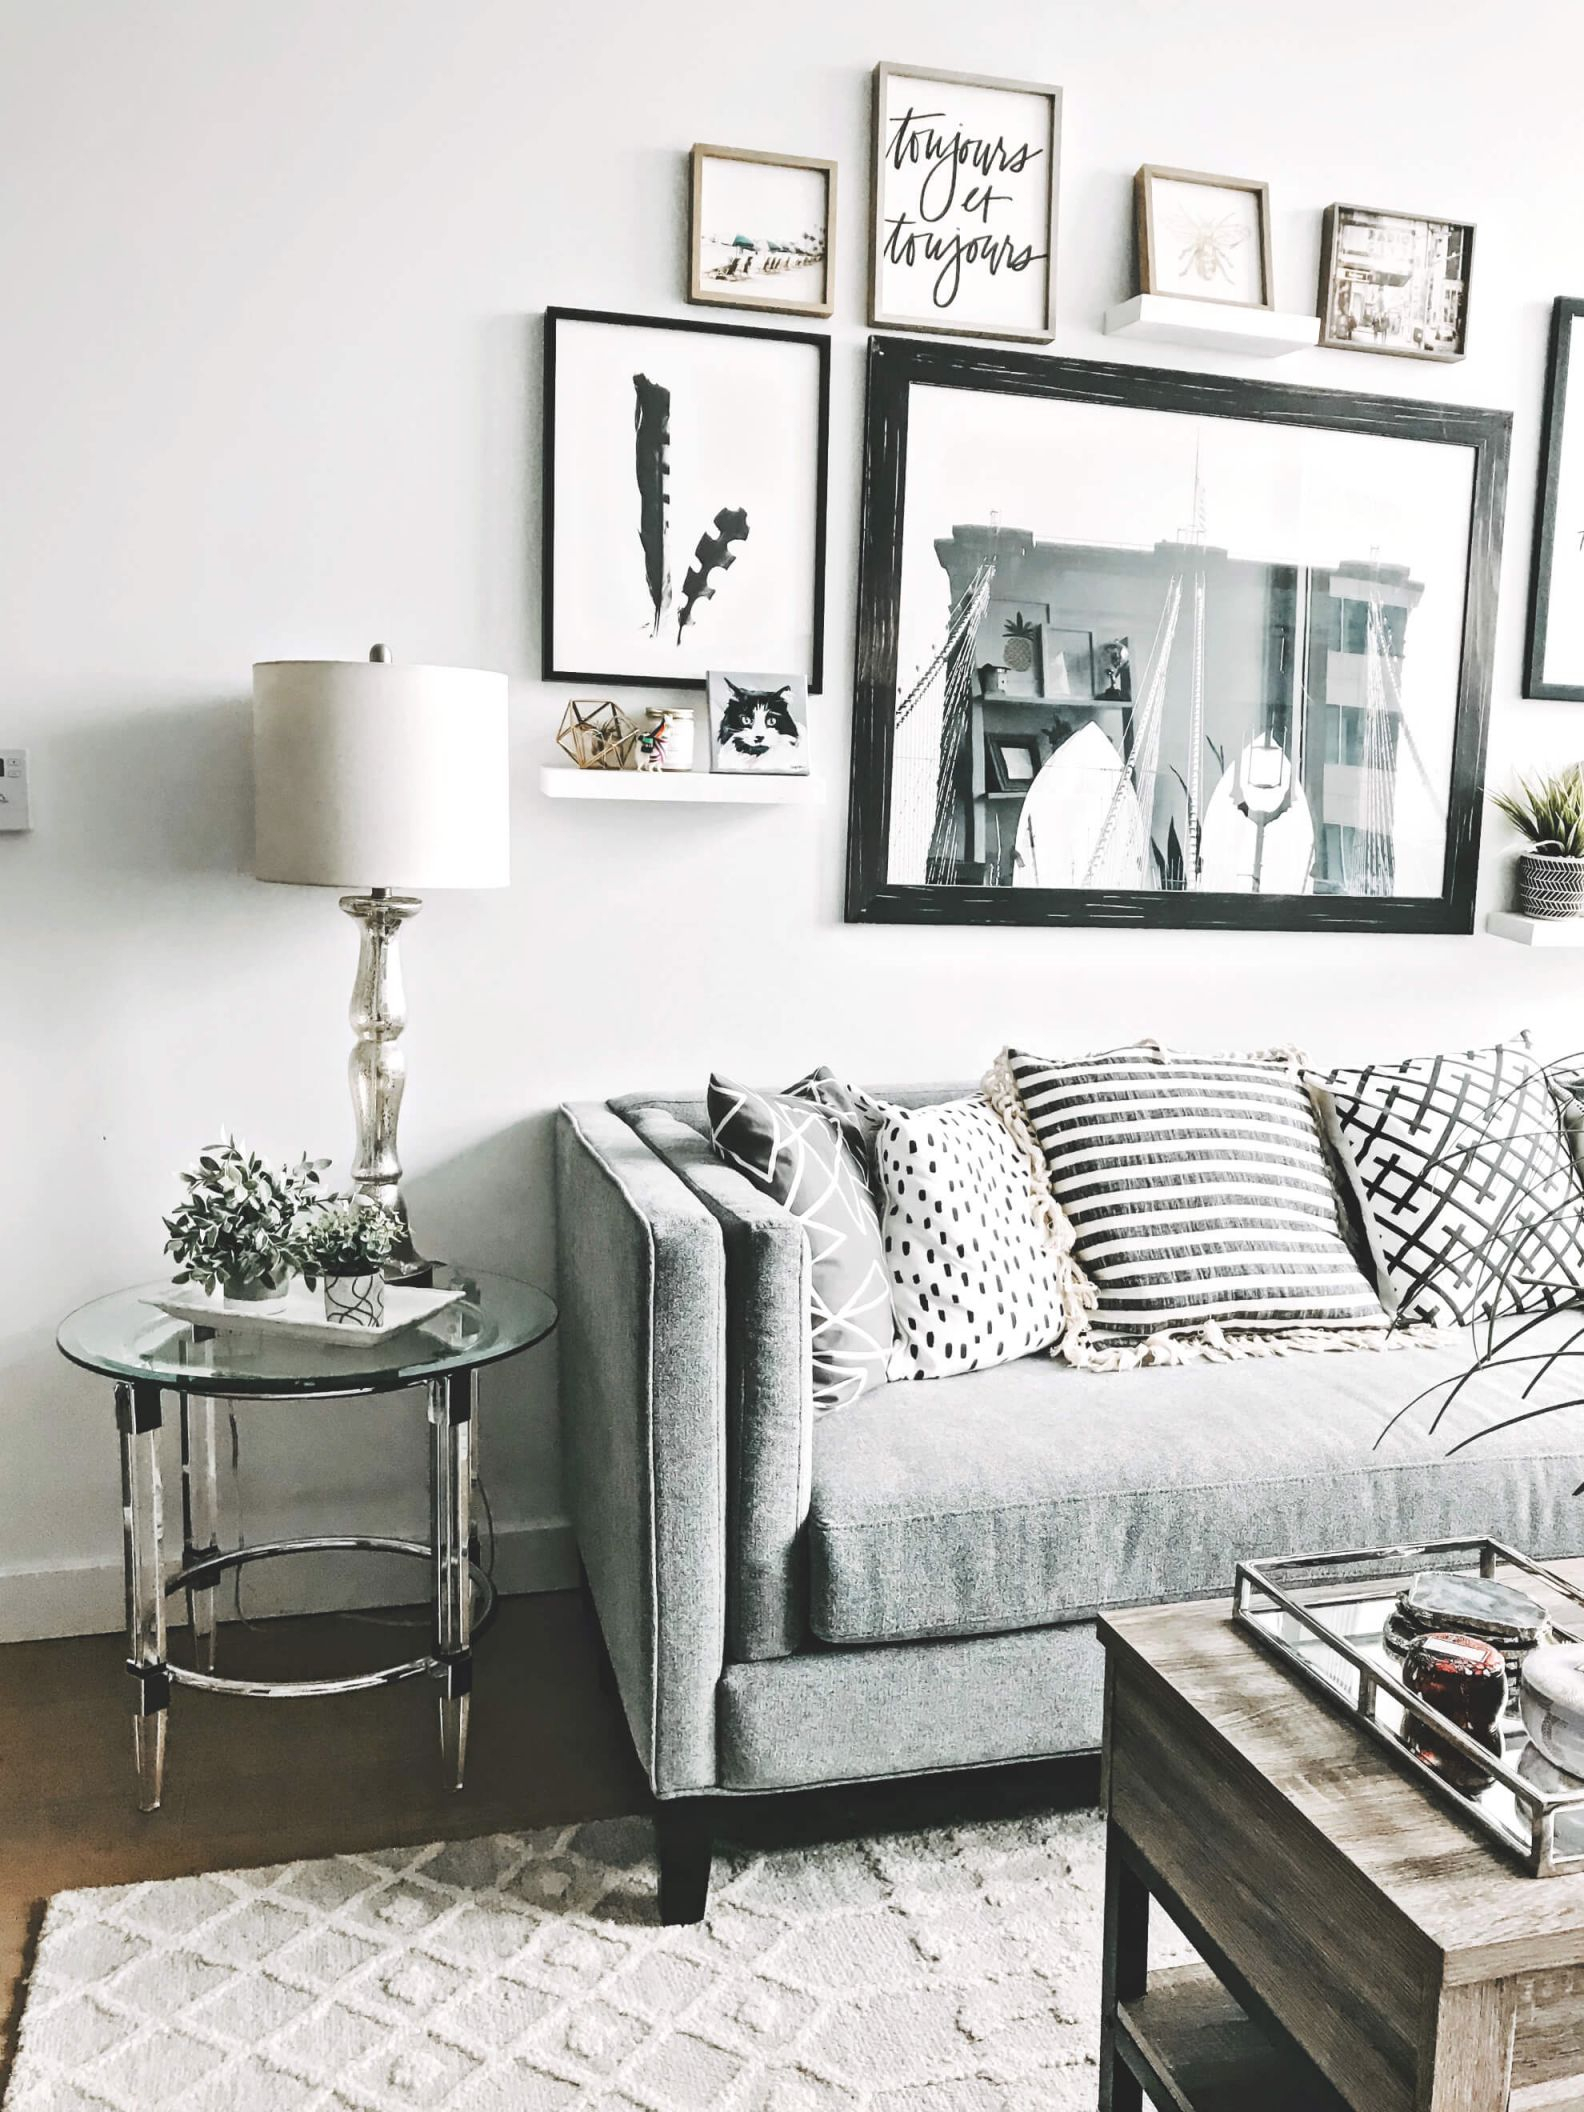 My Living Room Revamp With Raymour & Flanigan | To Be Bright throughout Raymour And Flanigan Sectional Sofas